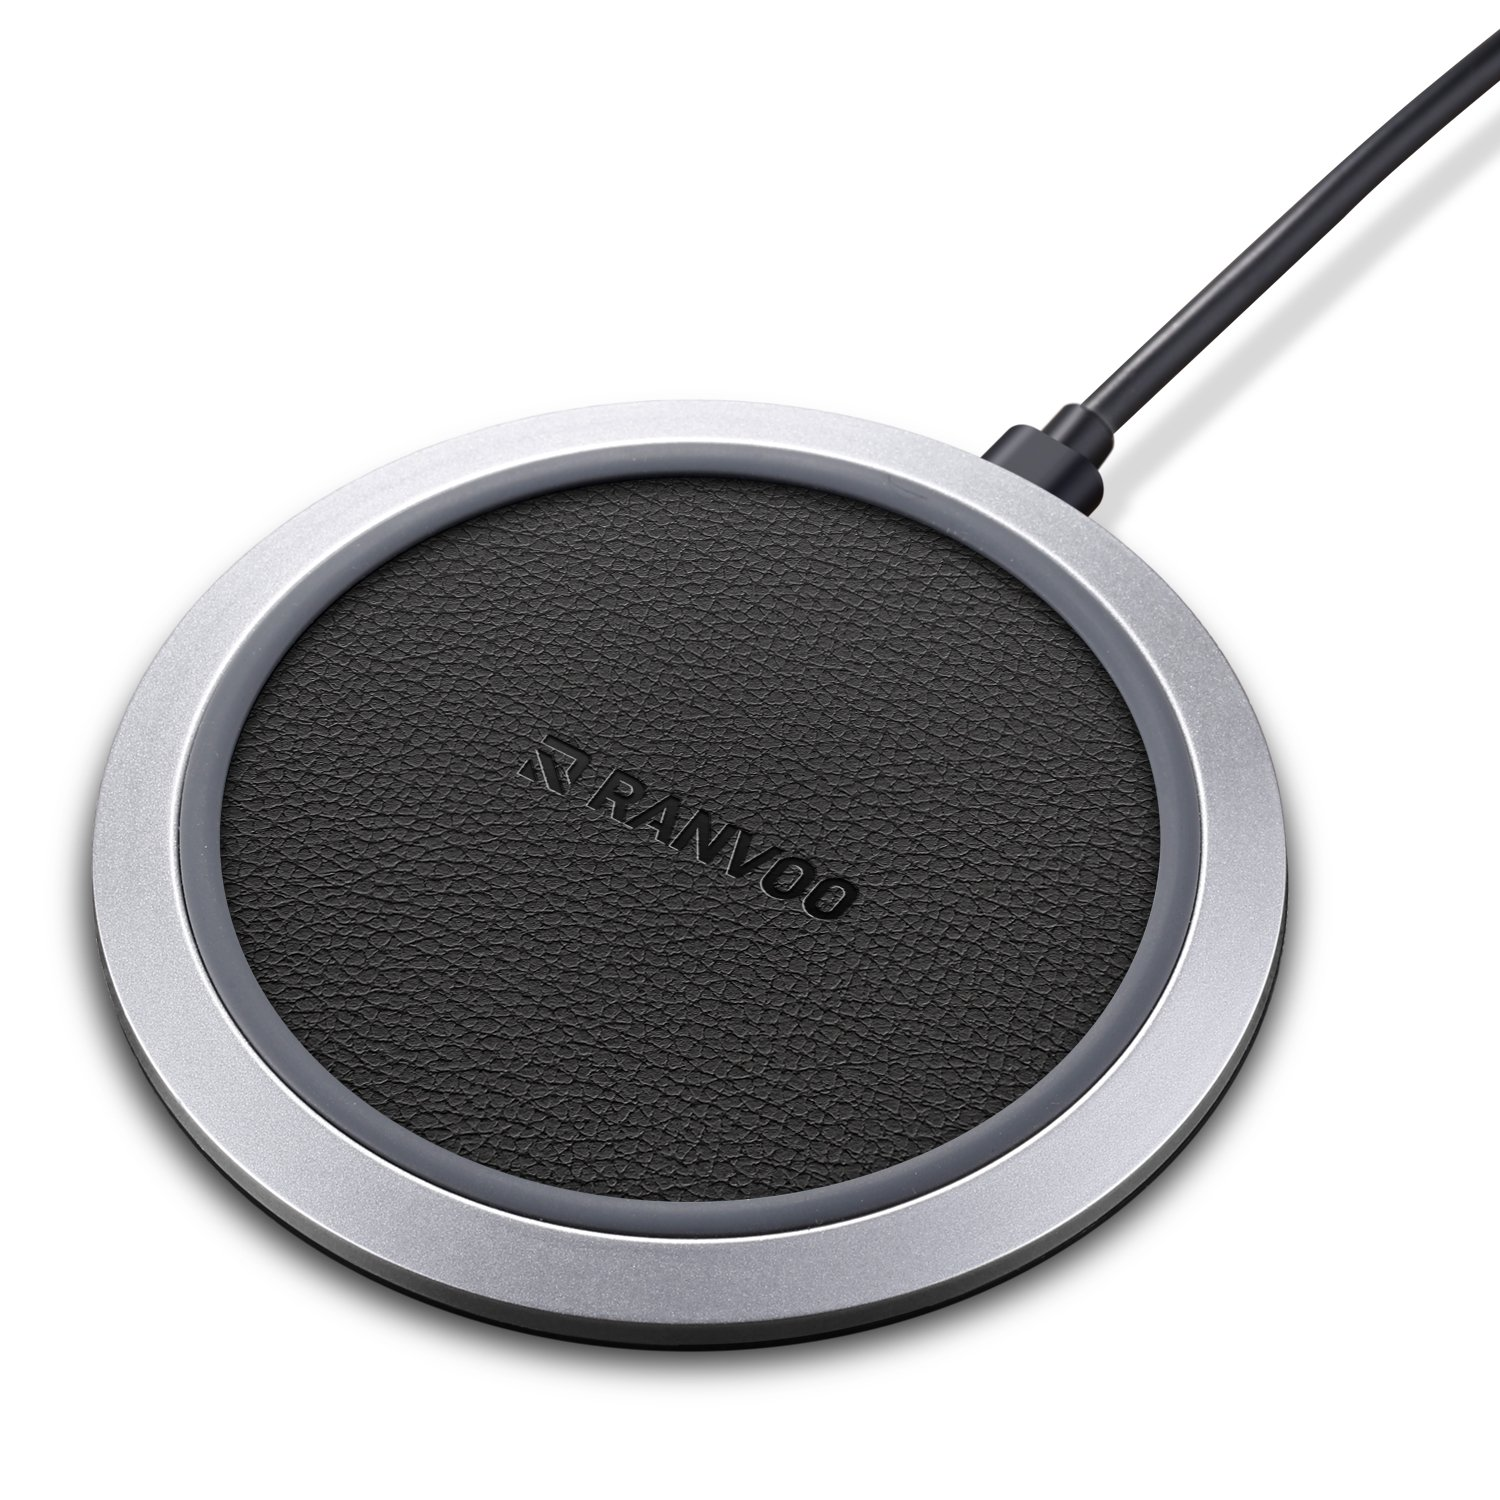 Wireless Charger, RANVOO Wireless Fast Charging Pad for iPhone X, 8, 8 Plus, Samsung Note 8, Galaxy S9/ S9 Plus/ S8 / S8 Plus / S7 and Other QI Enabled Android Devices (Retail Package)